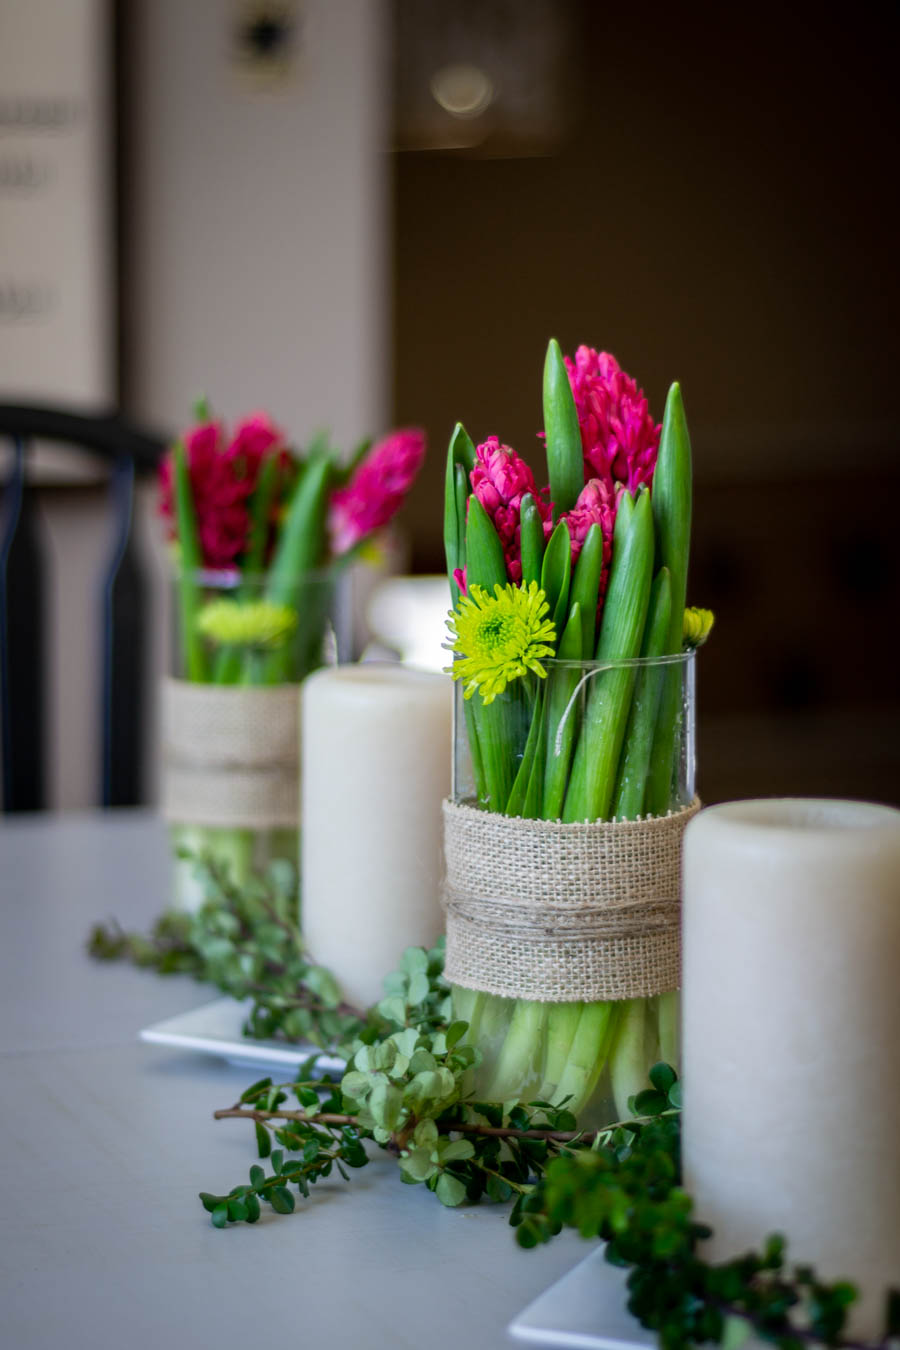 cylinder vases wrapped in burlap and twine for a simple spring floral centerpiece